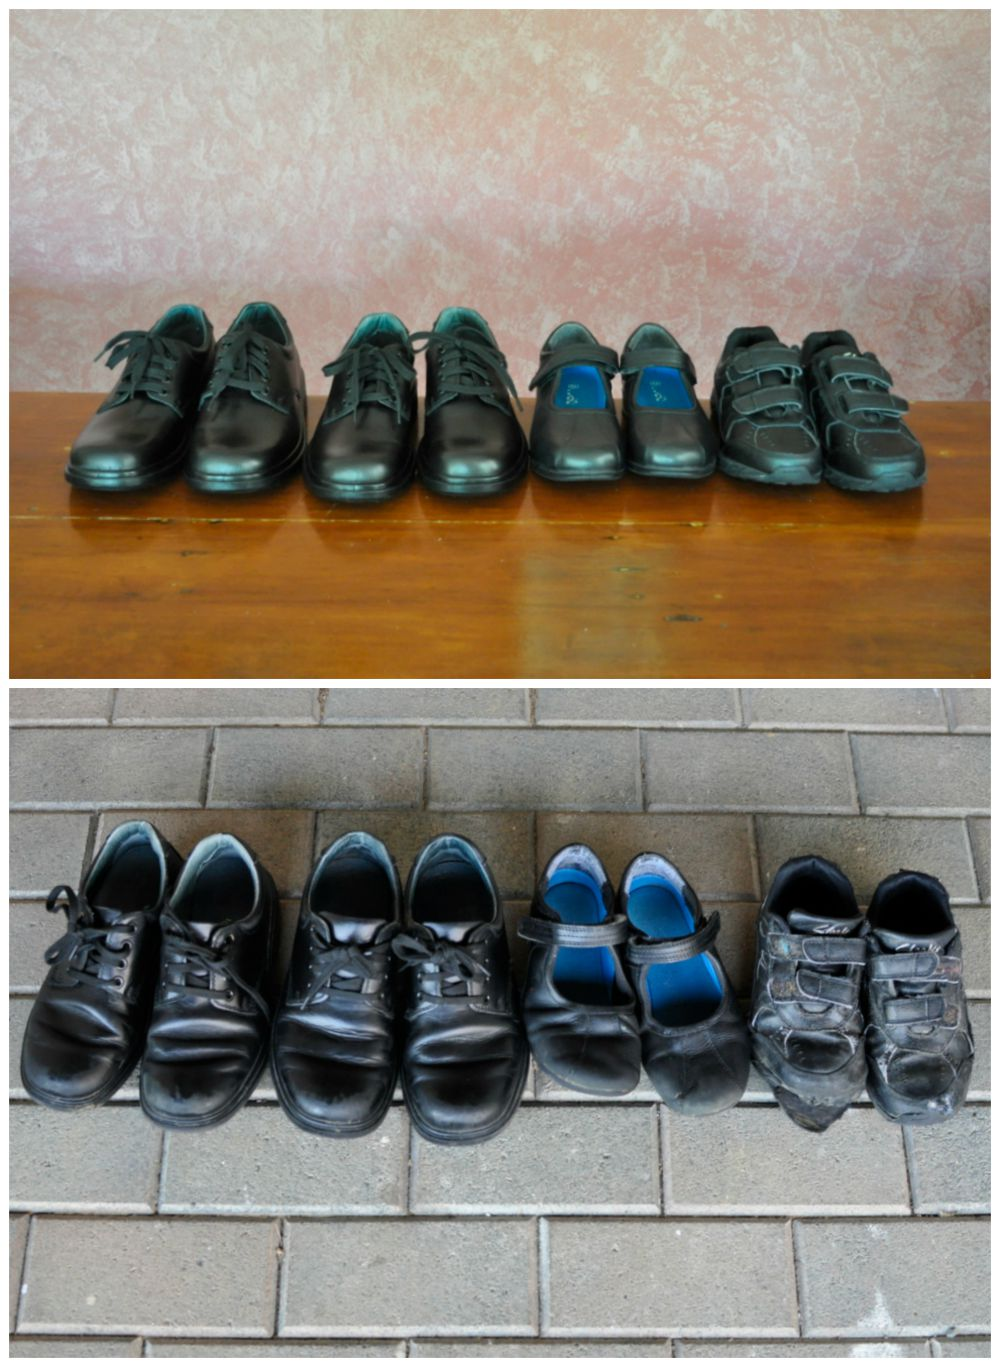 School Shoes - 6 Months on